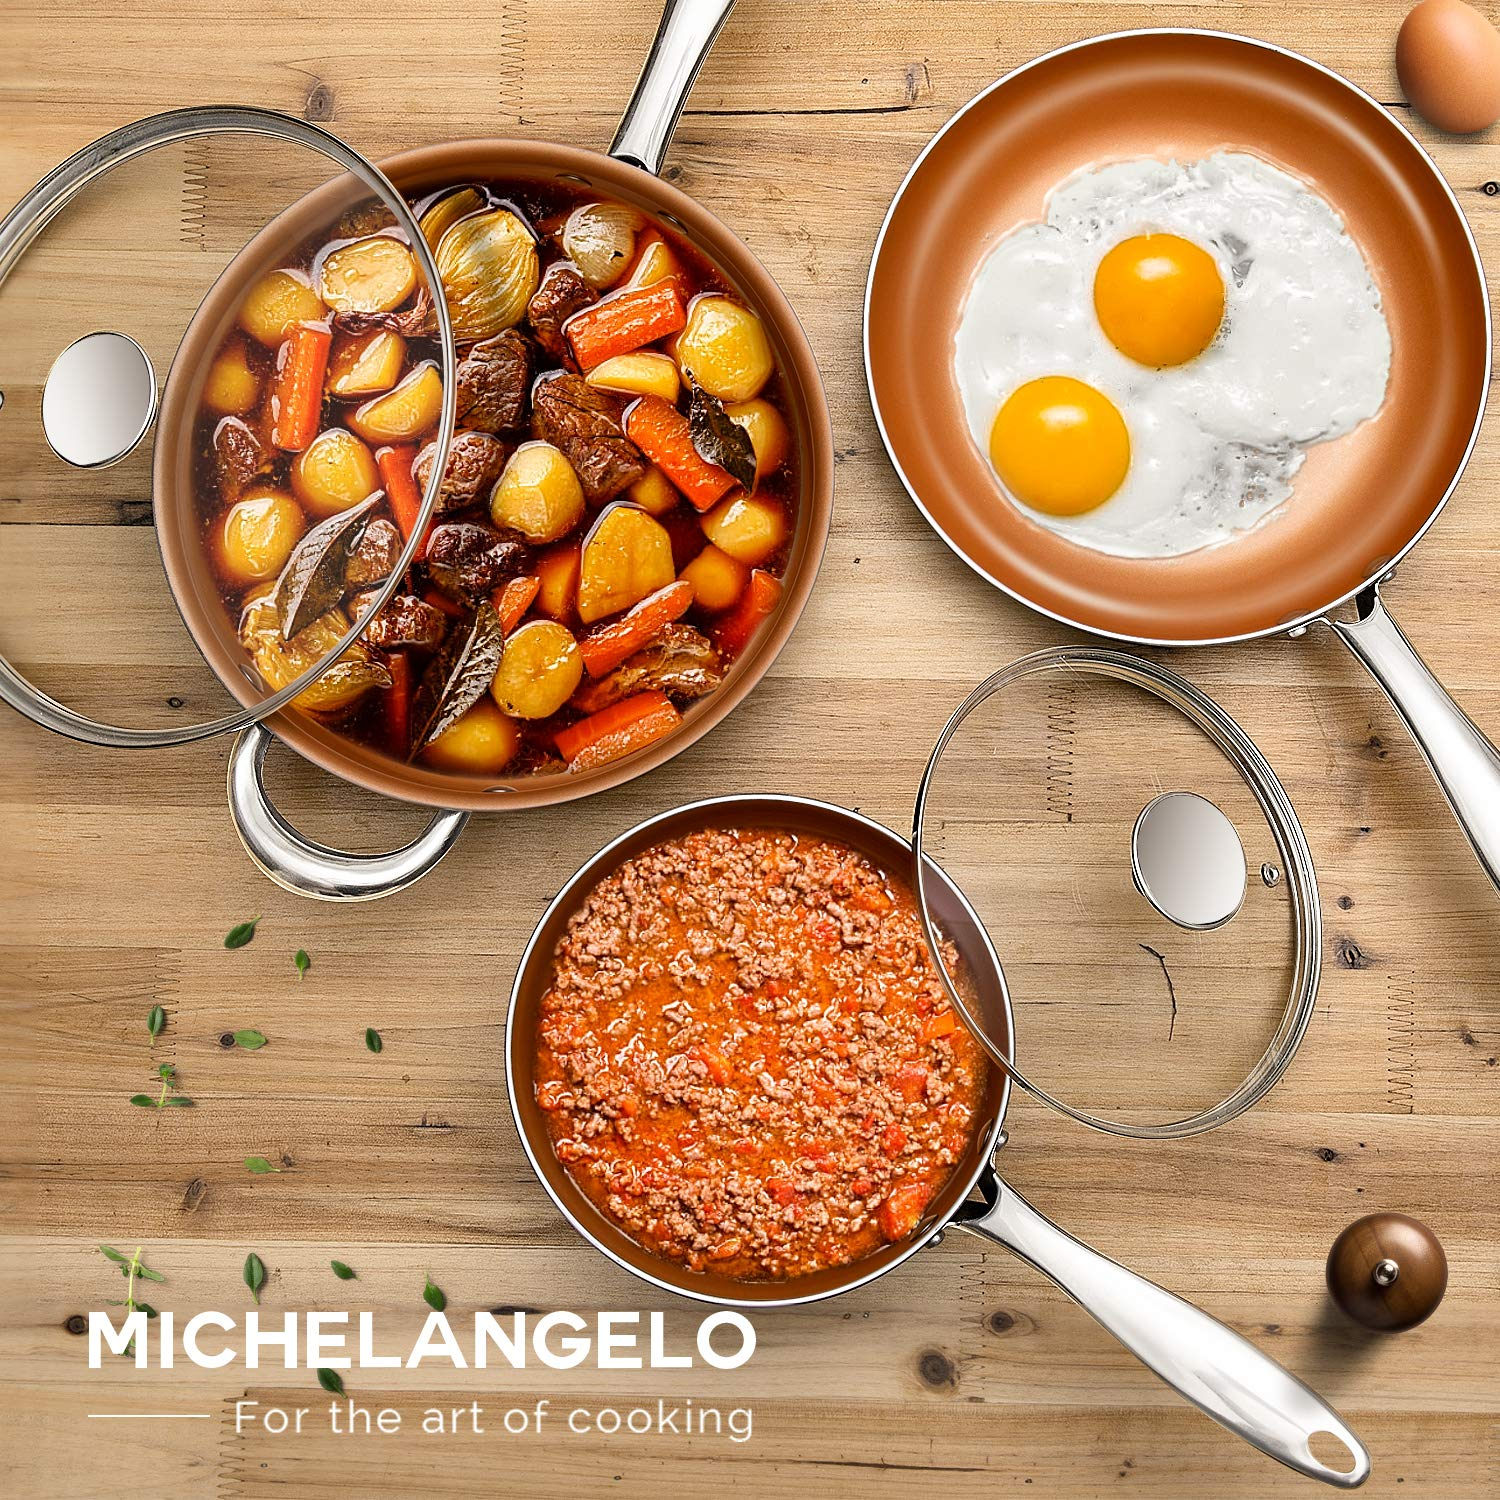 Ultra Nonstick Pots and Pans Copper with Ceramic Interior Copper Pots and Pans Ceramic Pot and Pans Set Copper Nonstick Cookware Set Copper Pots Set -5Pcs MICHELANGELO Copper Cookware Set 5 Piece